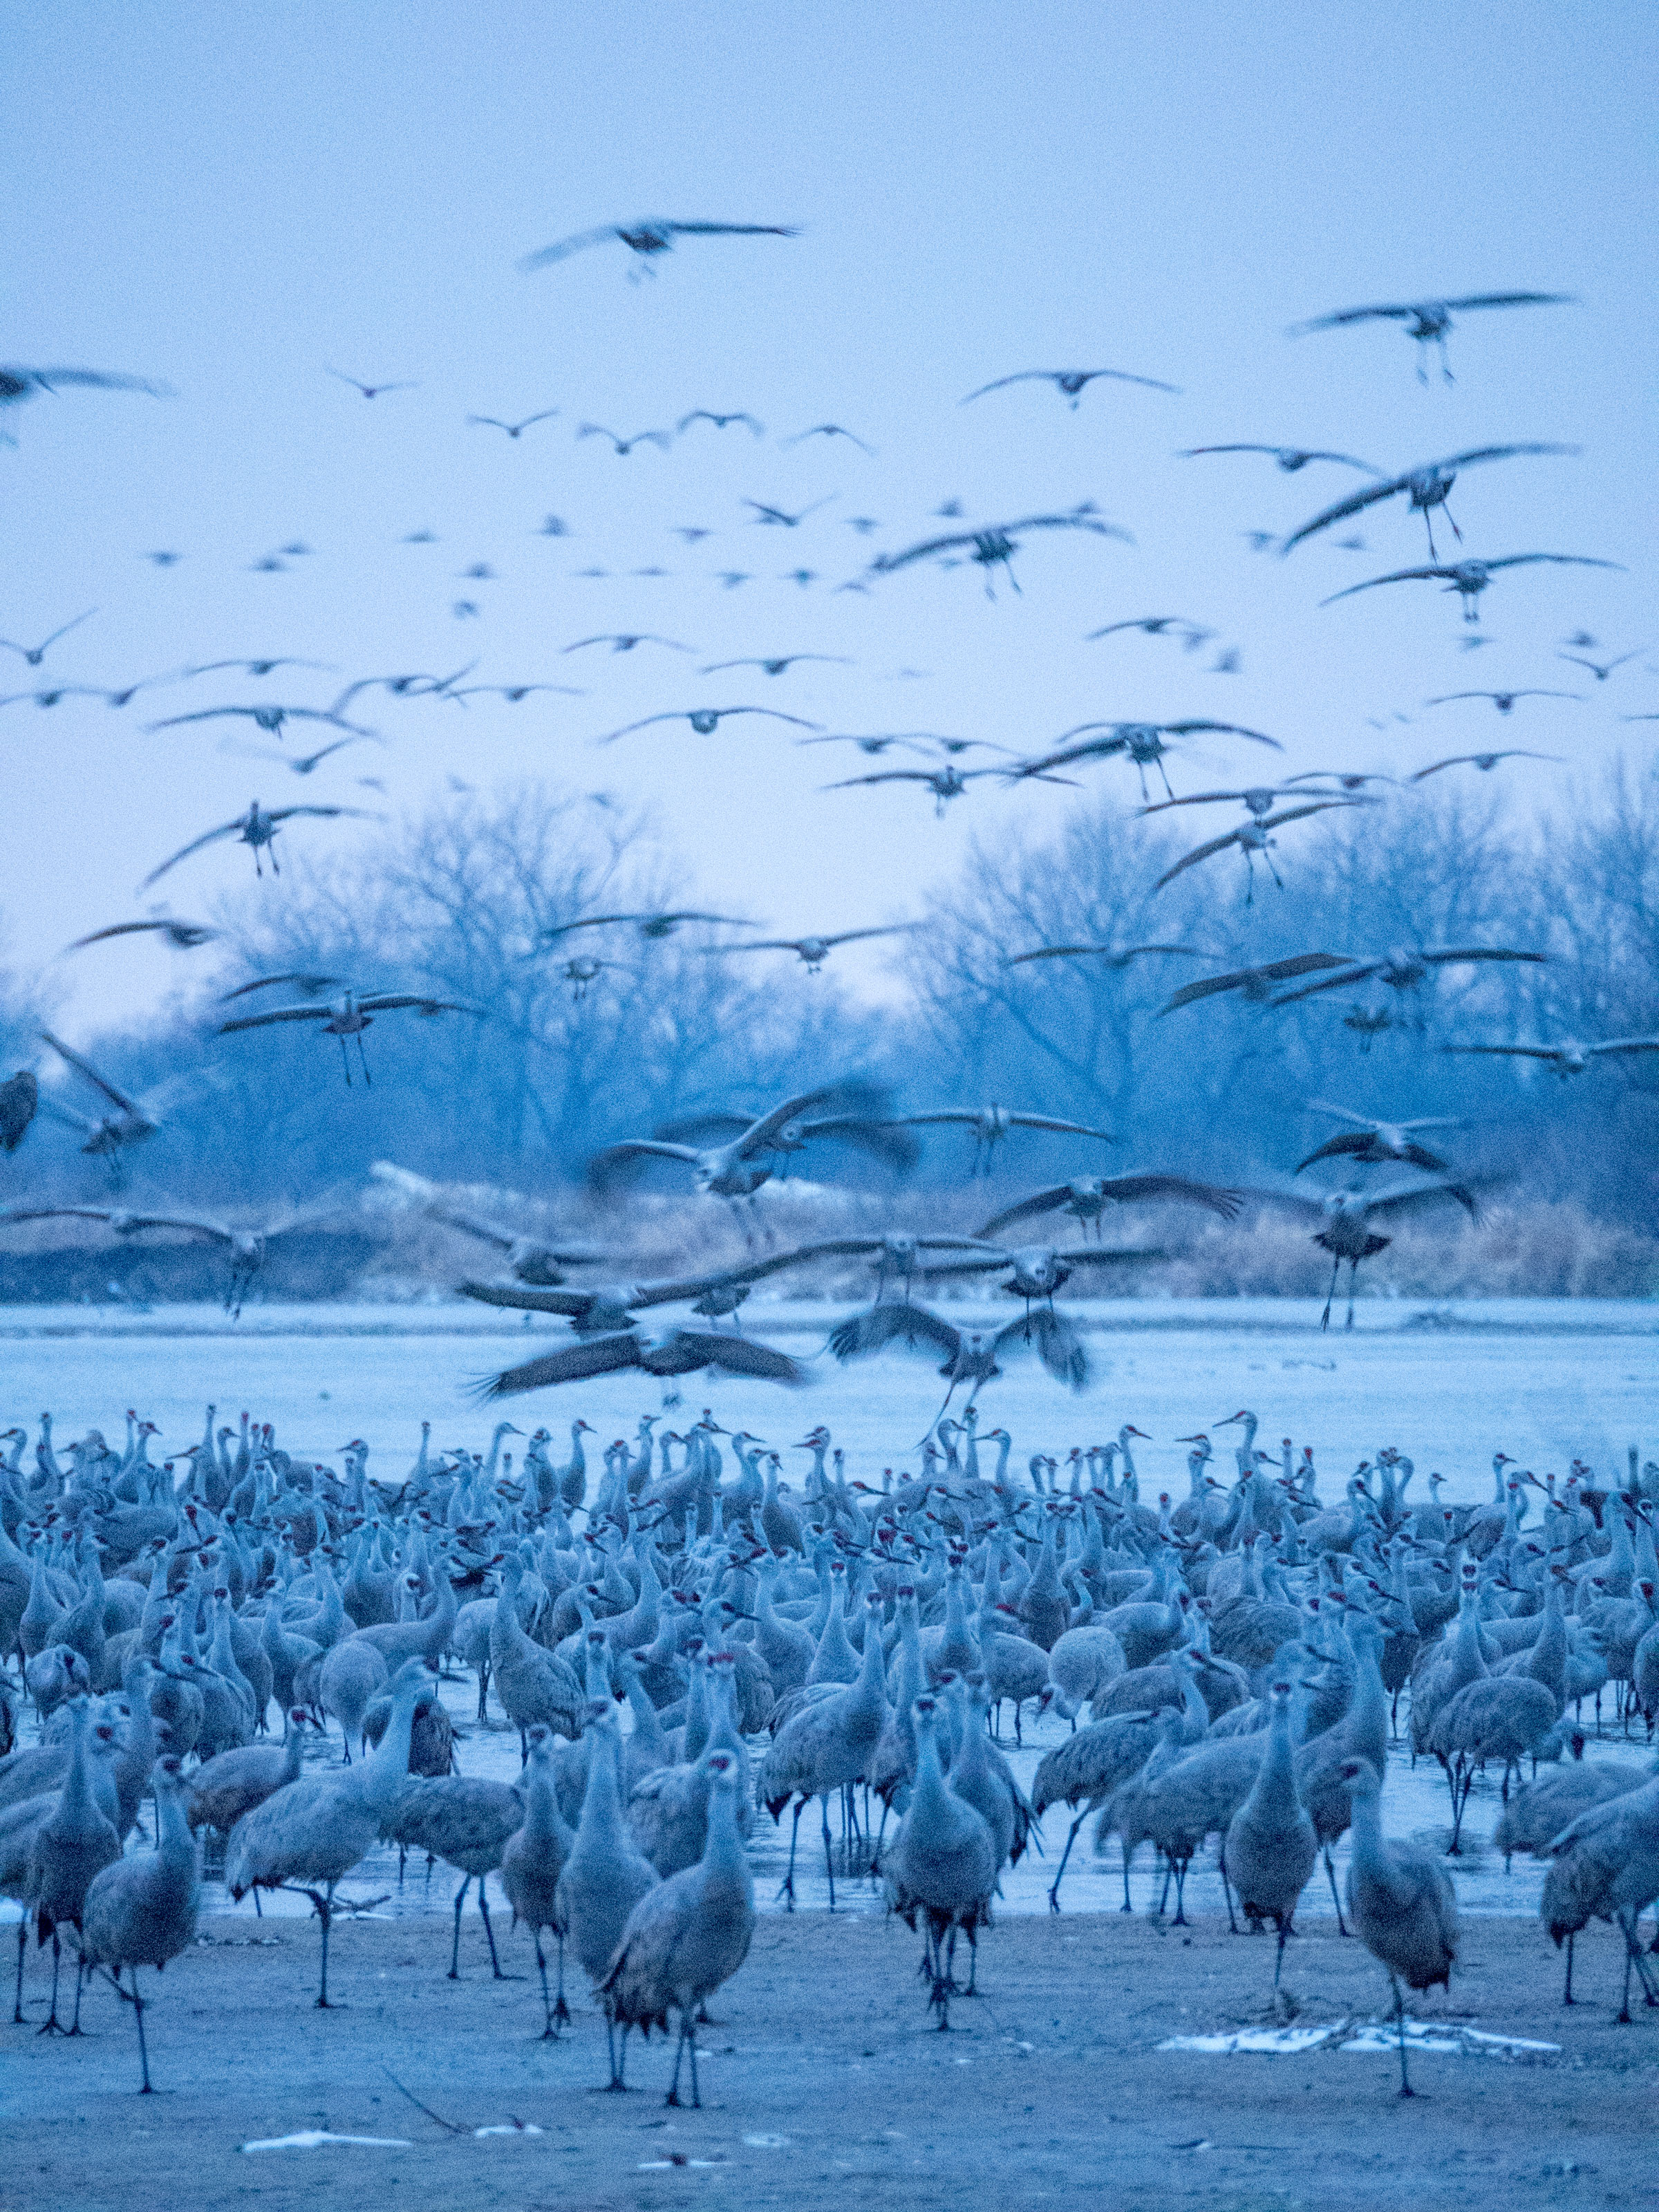 As the sun dipped below the horizon, flocks of the birds continued to touch down and congregate along the river. Preeti Desai/Audubon